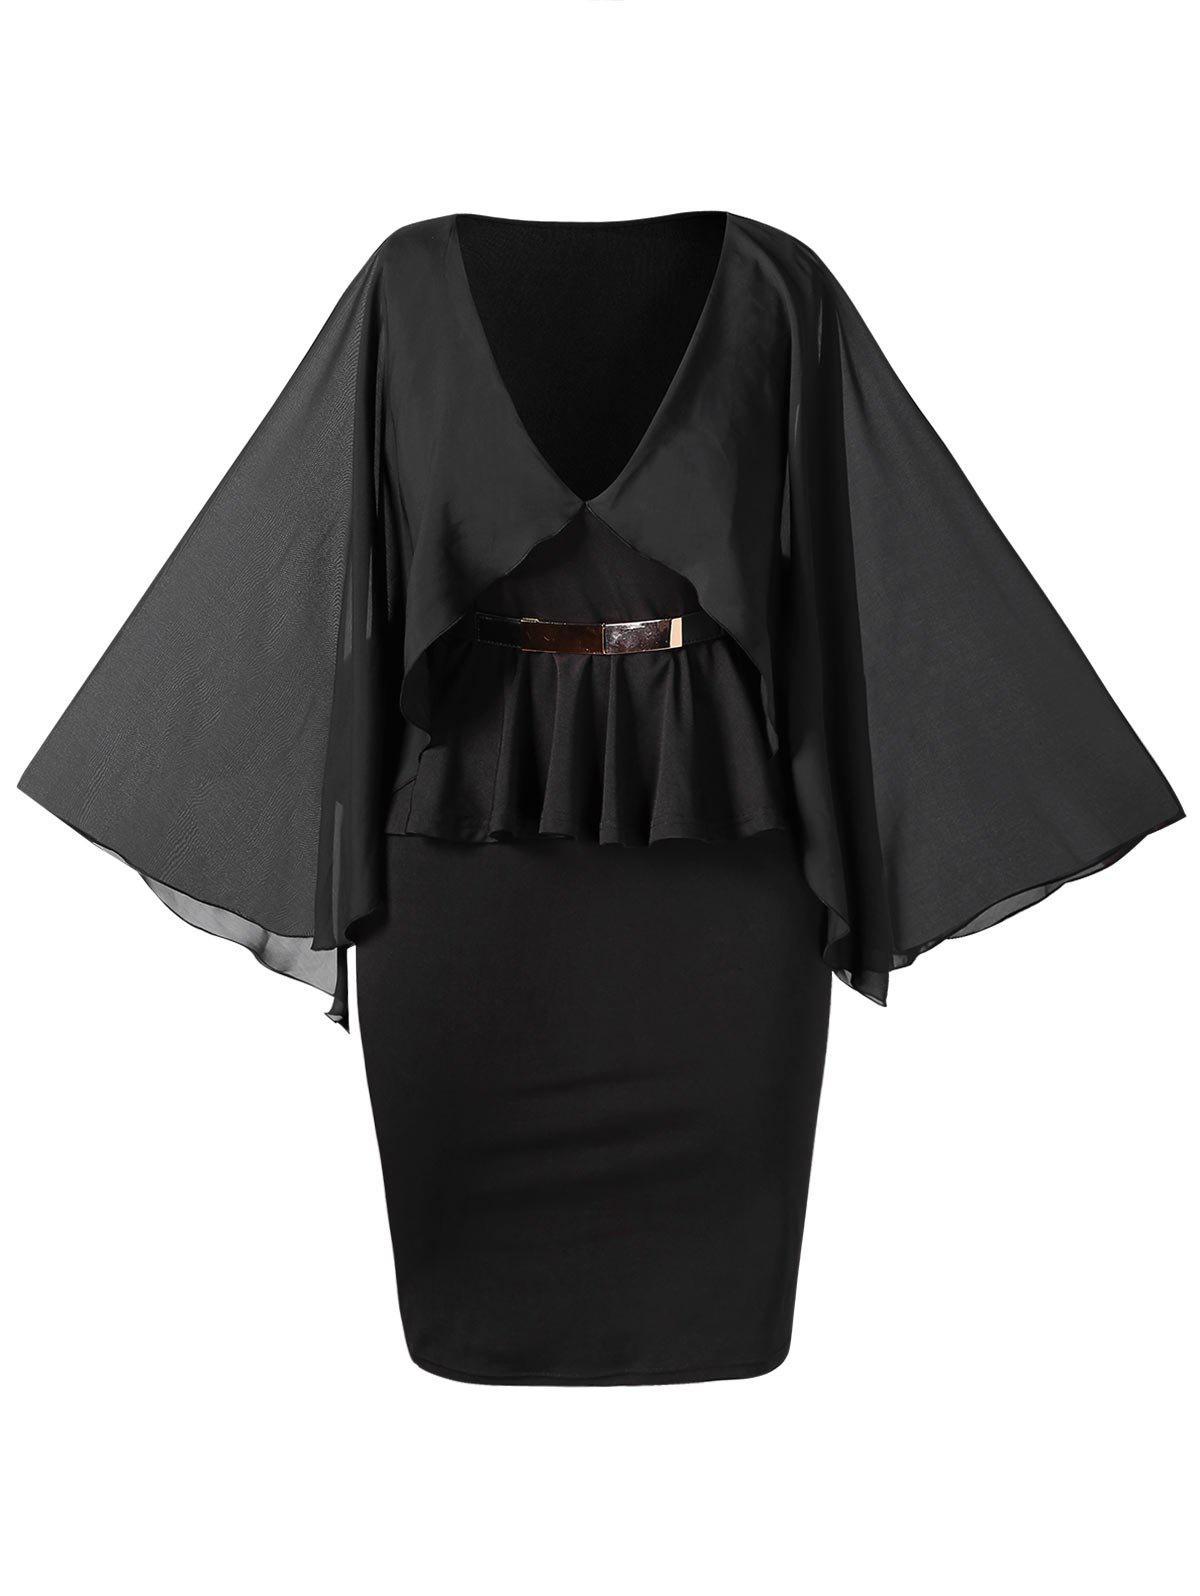 Plus Size Cape Peplum Dress with Belt - BLACK L